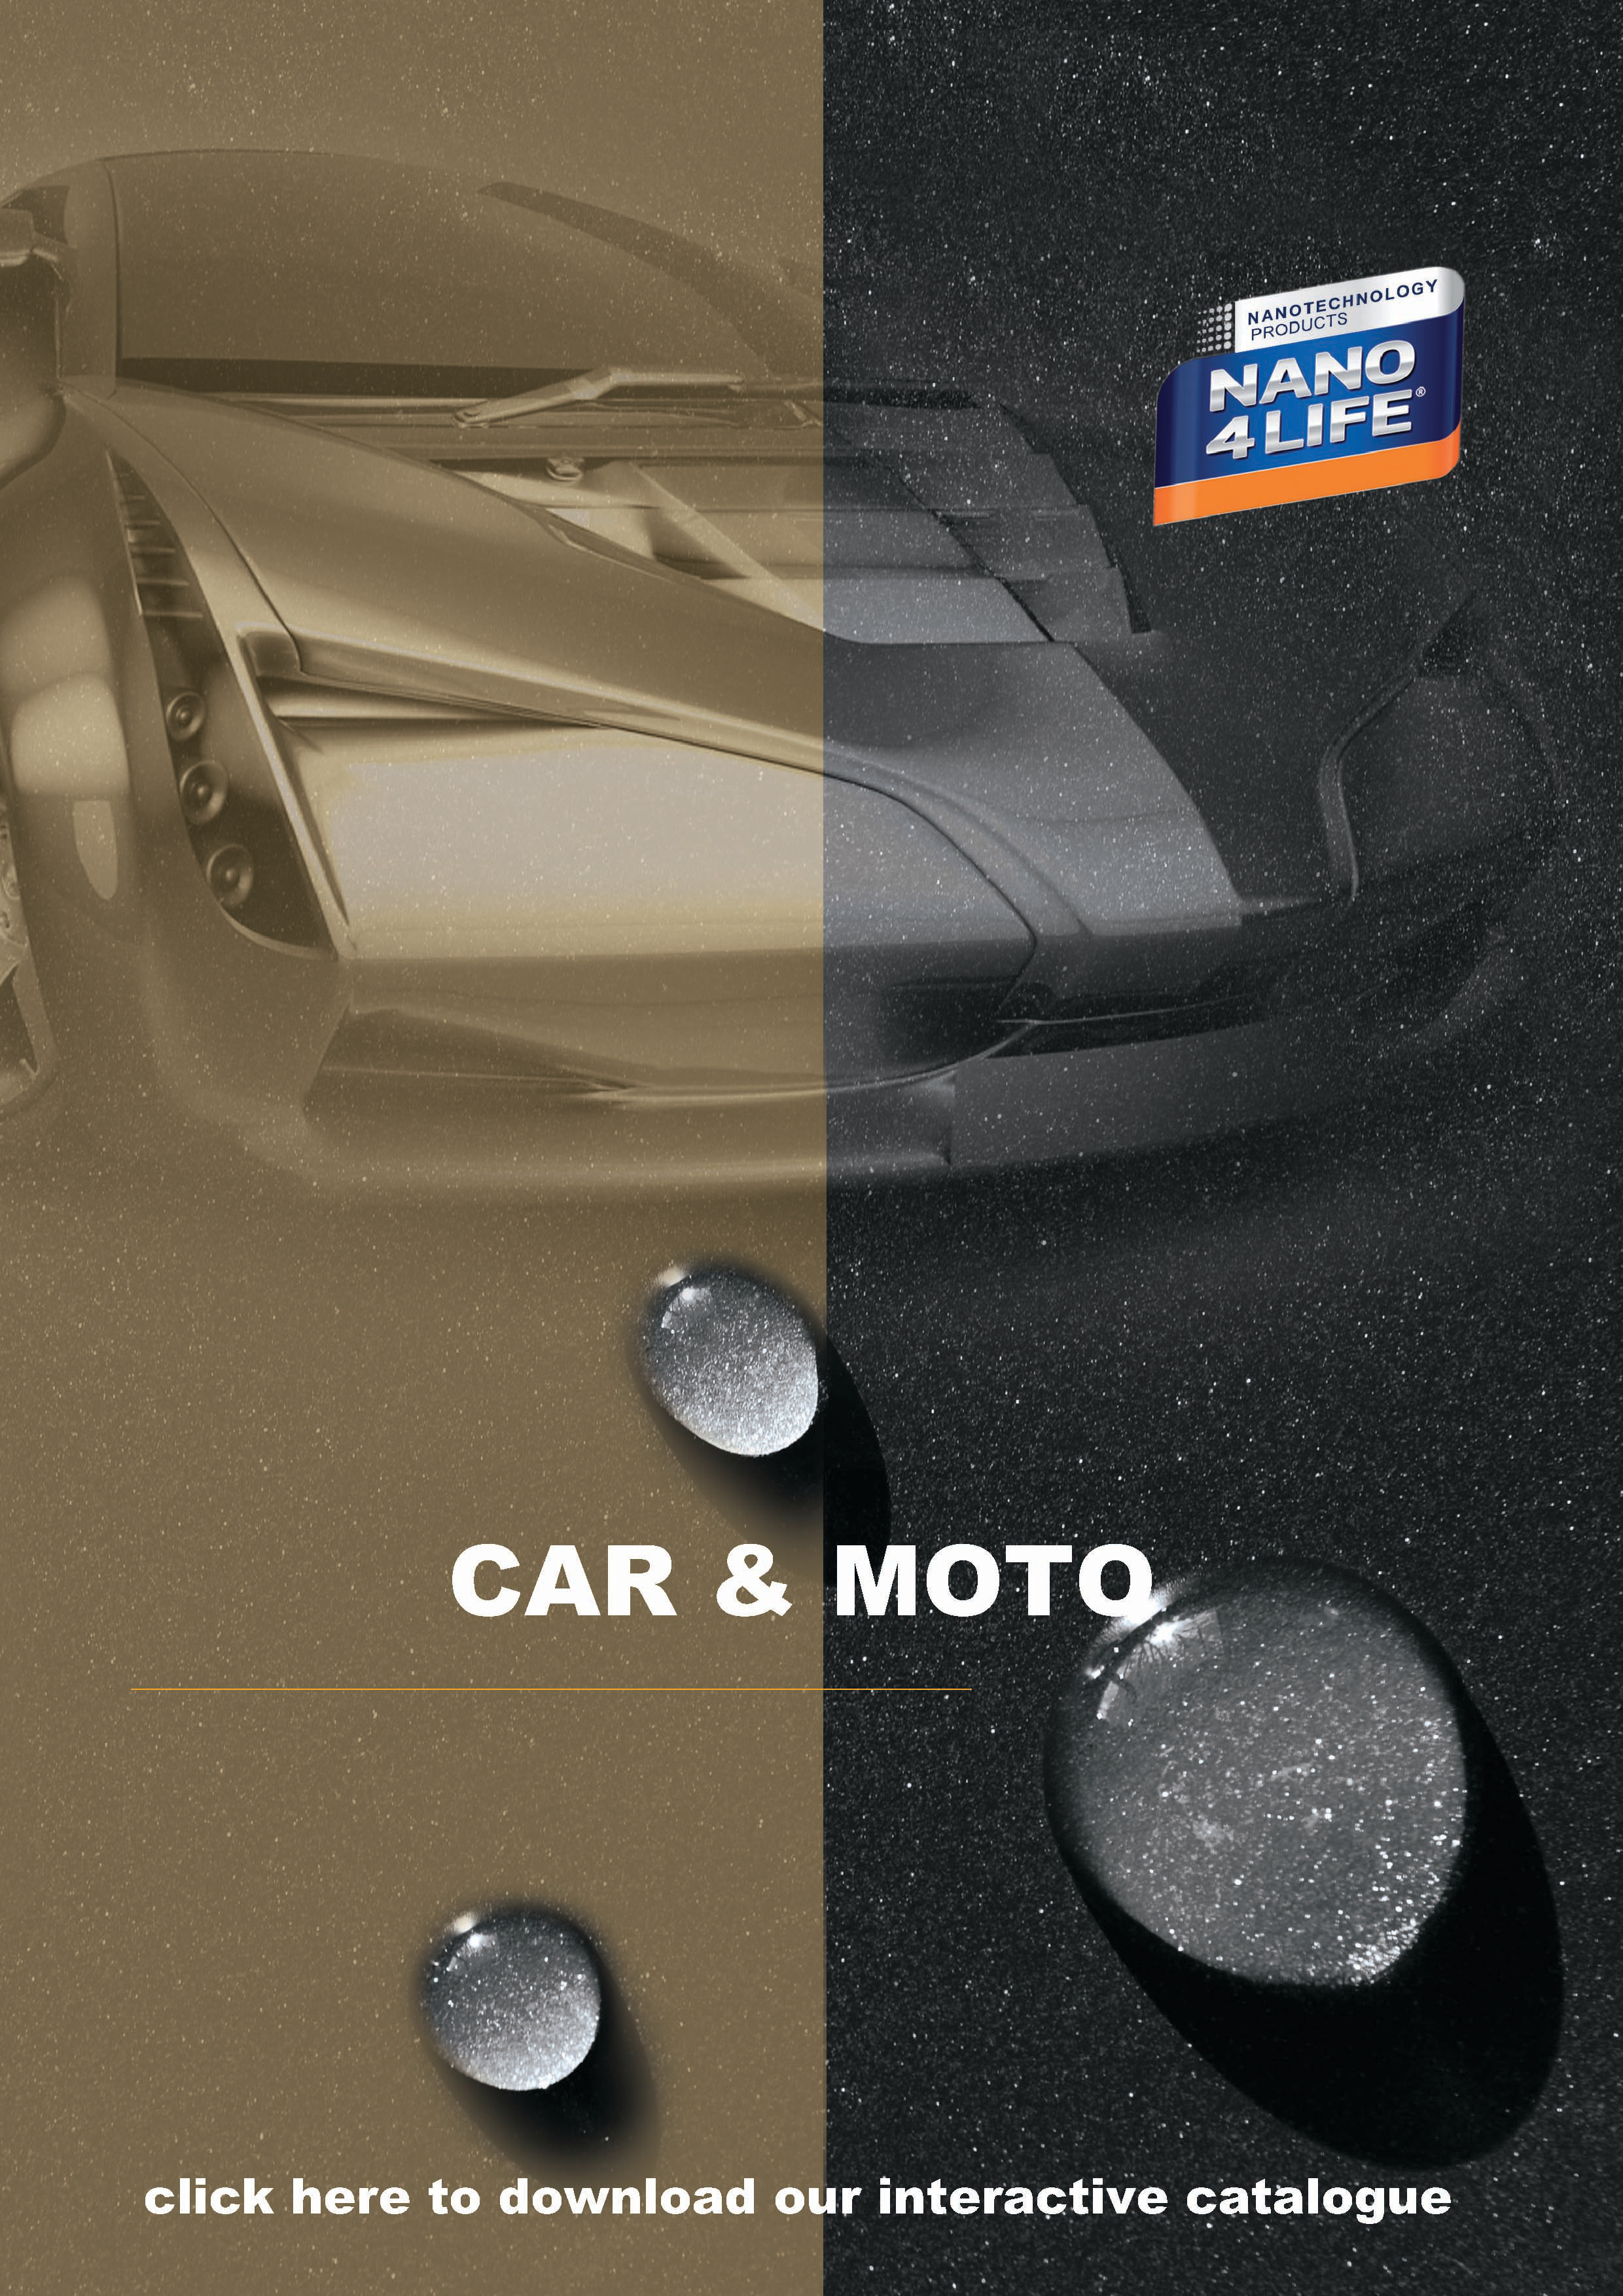 INTERACTIVE CATALOGUE FORCAR & MOTO